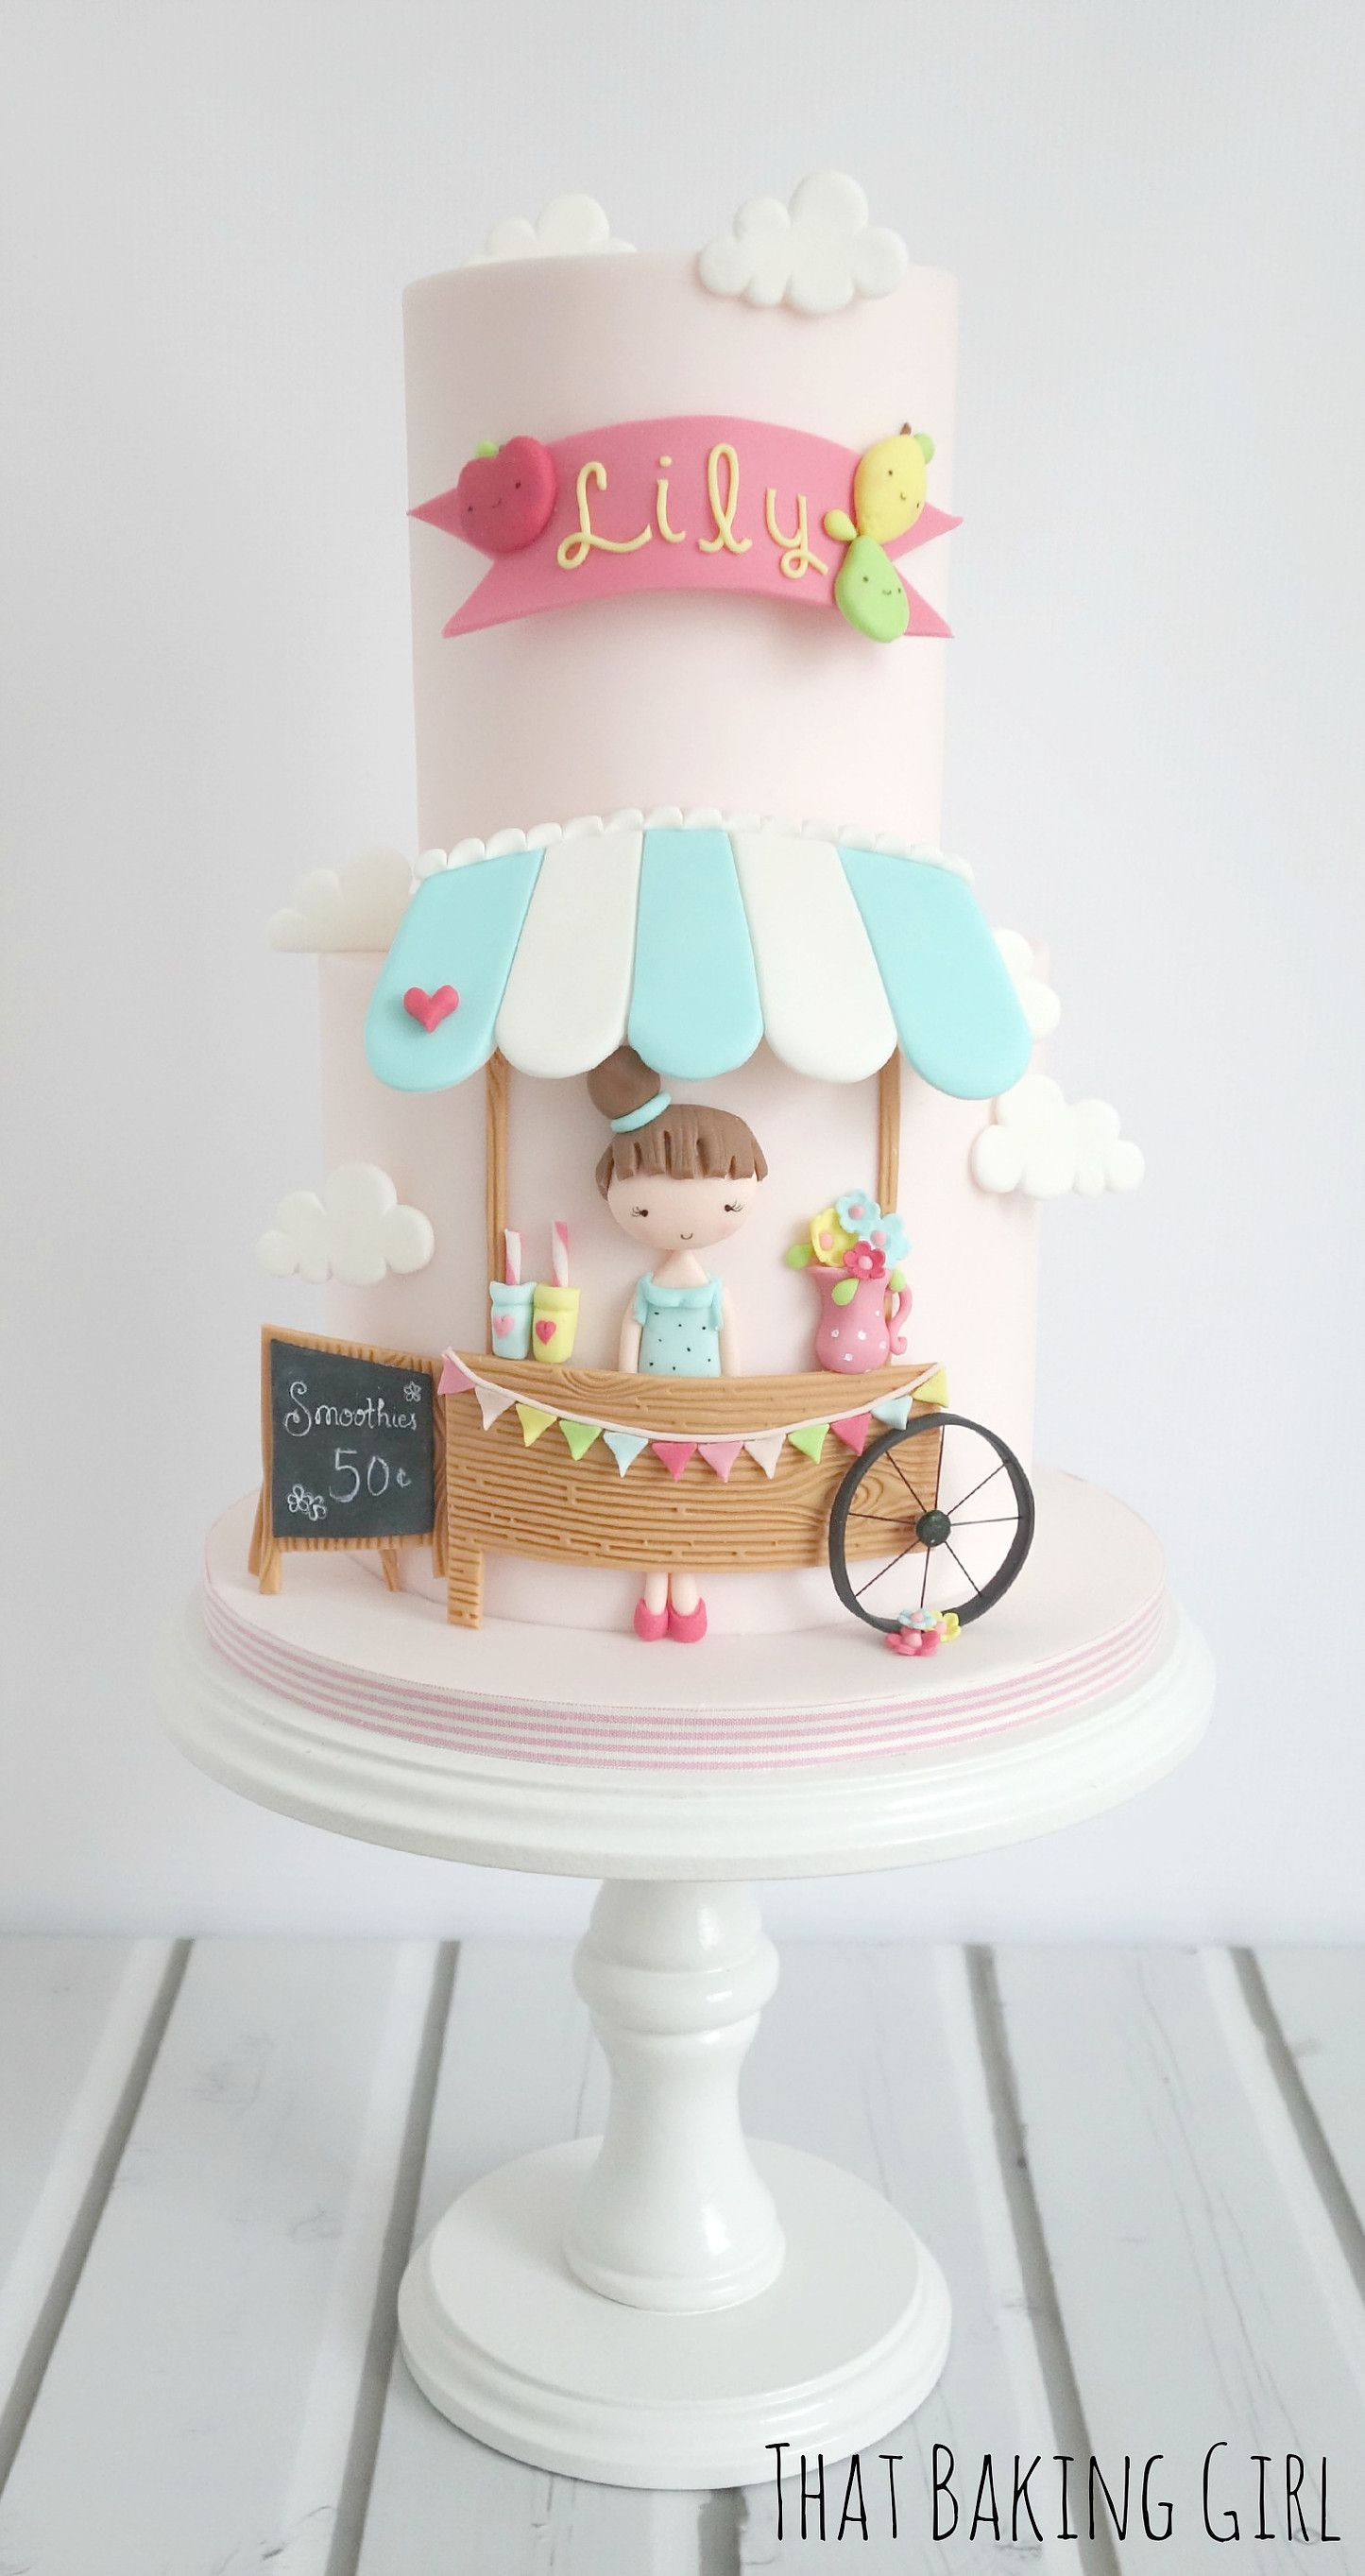 That Baking Girl Zürich | Home | Let them eat cake~ | Pinterest ...